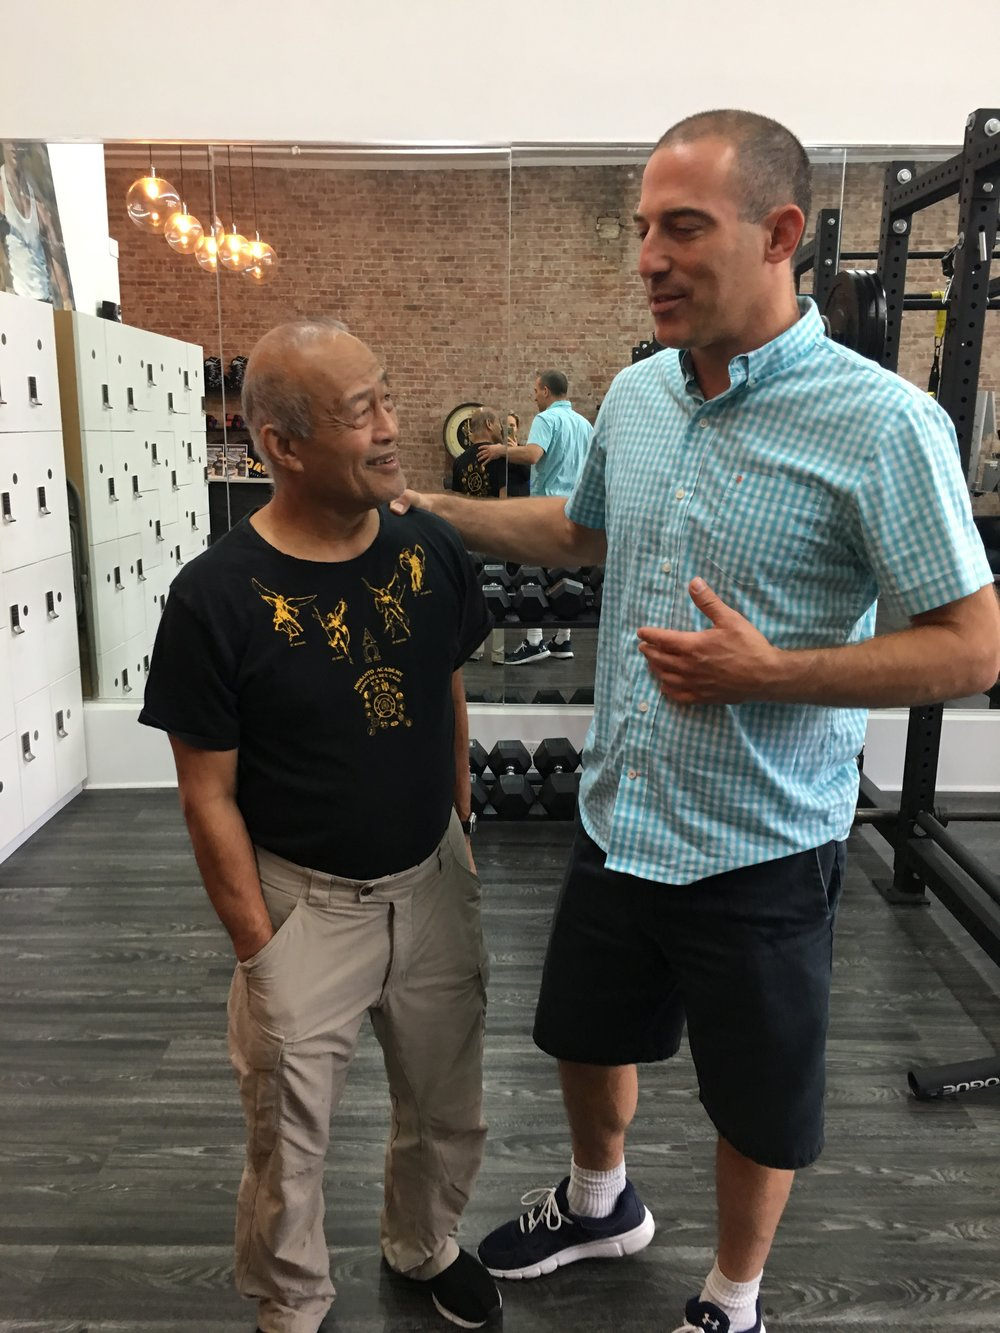 Dr. Pete talking about the Zone Technique just prior to adjusting Master of Masters (and Bruce Lee's Nunchaku instructor), Dan Inosanto. -